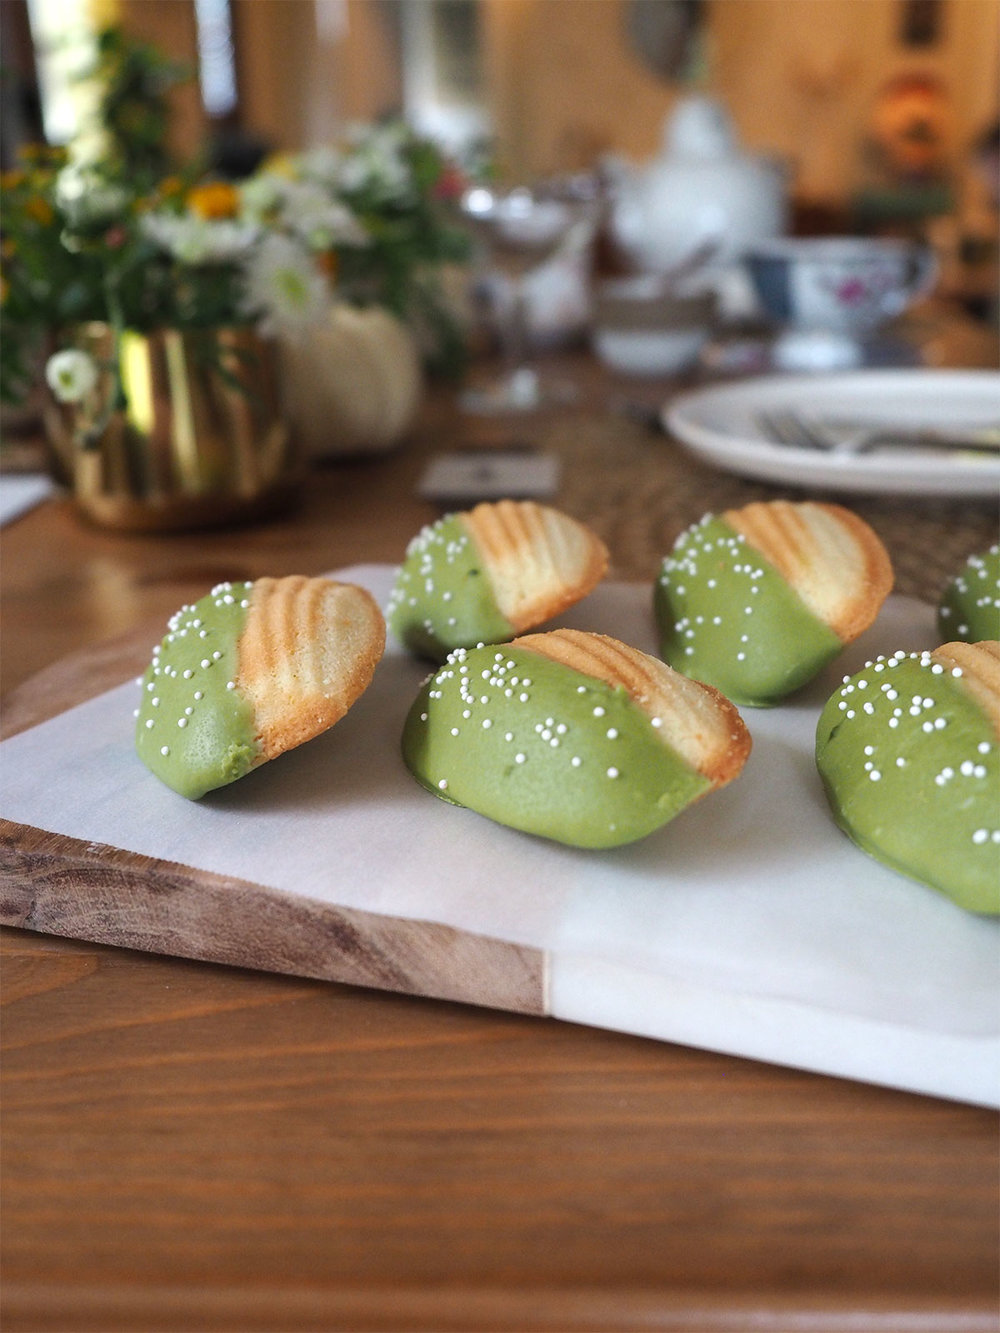 These delicious buttery madeleines are dipped in white chocolate and matcha green tea powder for a tasty tea party dessert! Just 4 ingredients and this recipe could not be easier. And while they have that classic matcha flavor, it isn't overwhelming — great for matcha and non-matcha fans alike.